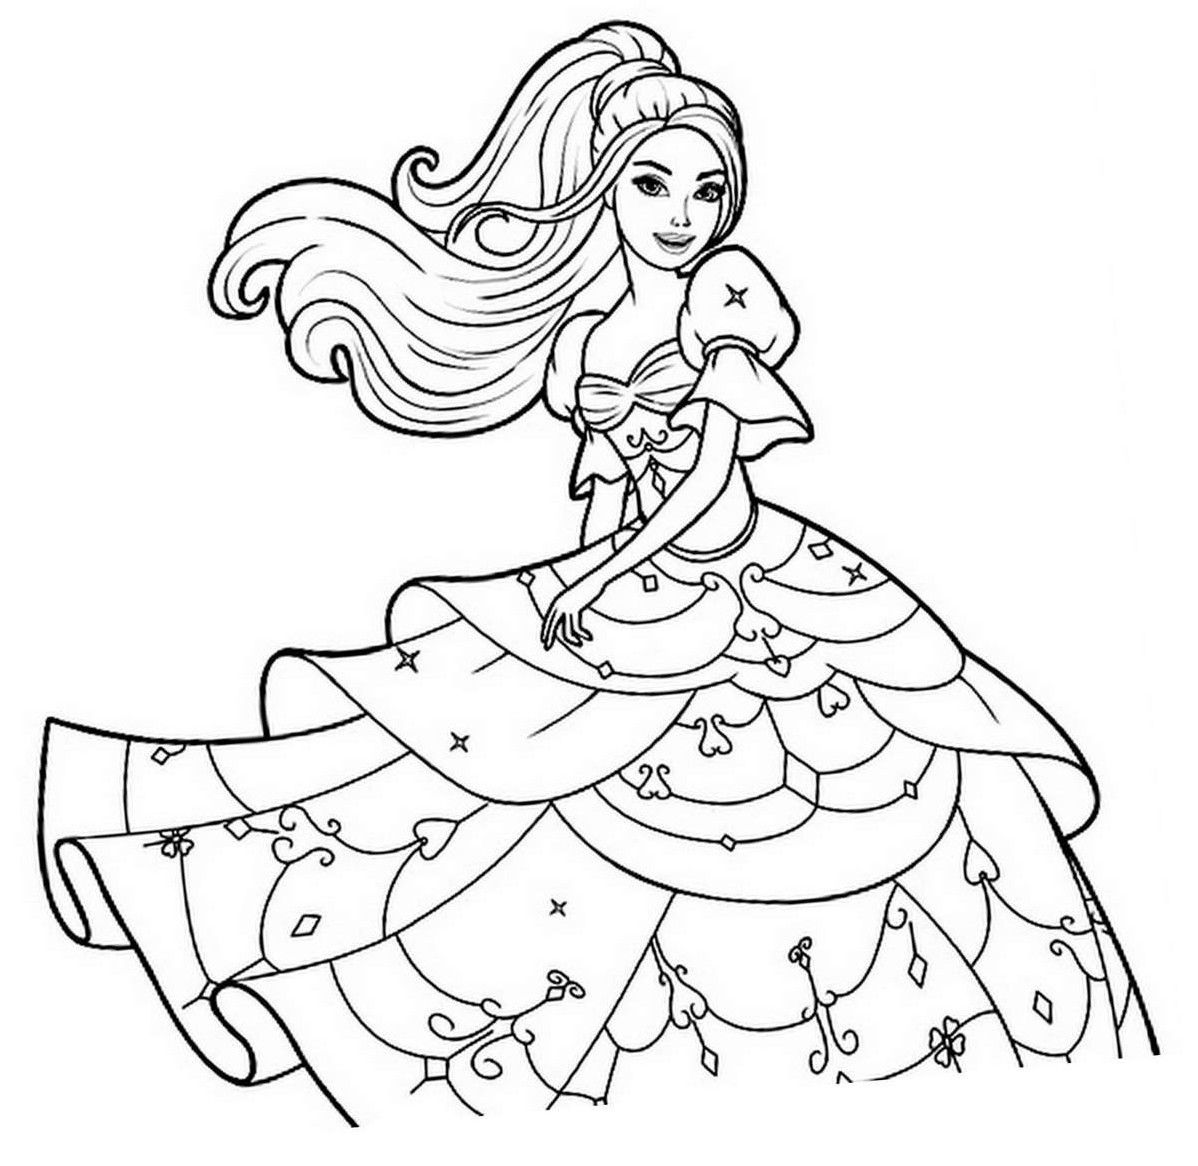 Dibujos de los vestidos de Barbie para colorear | Dresses & Shoes to ...